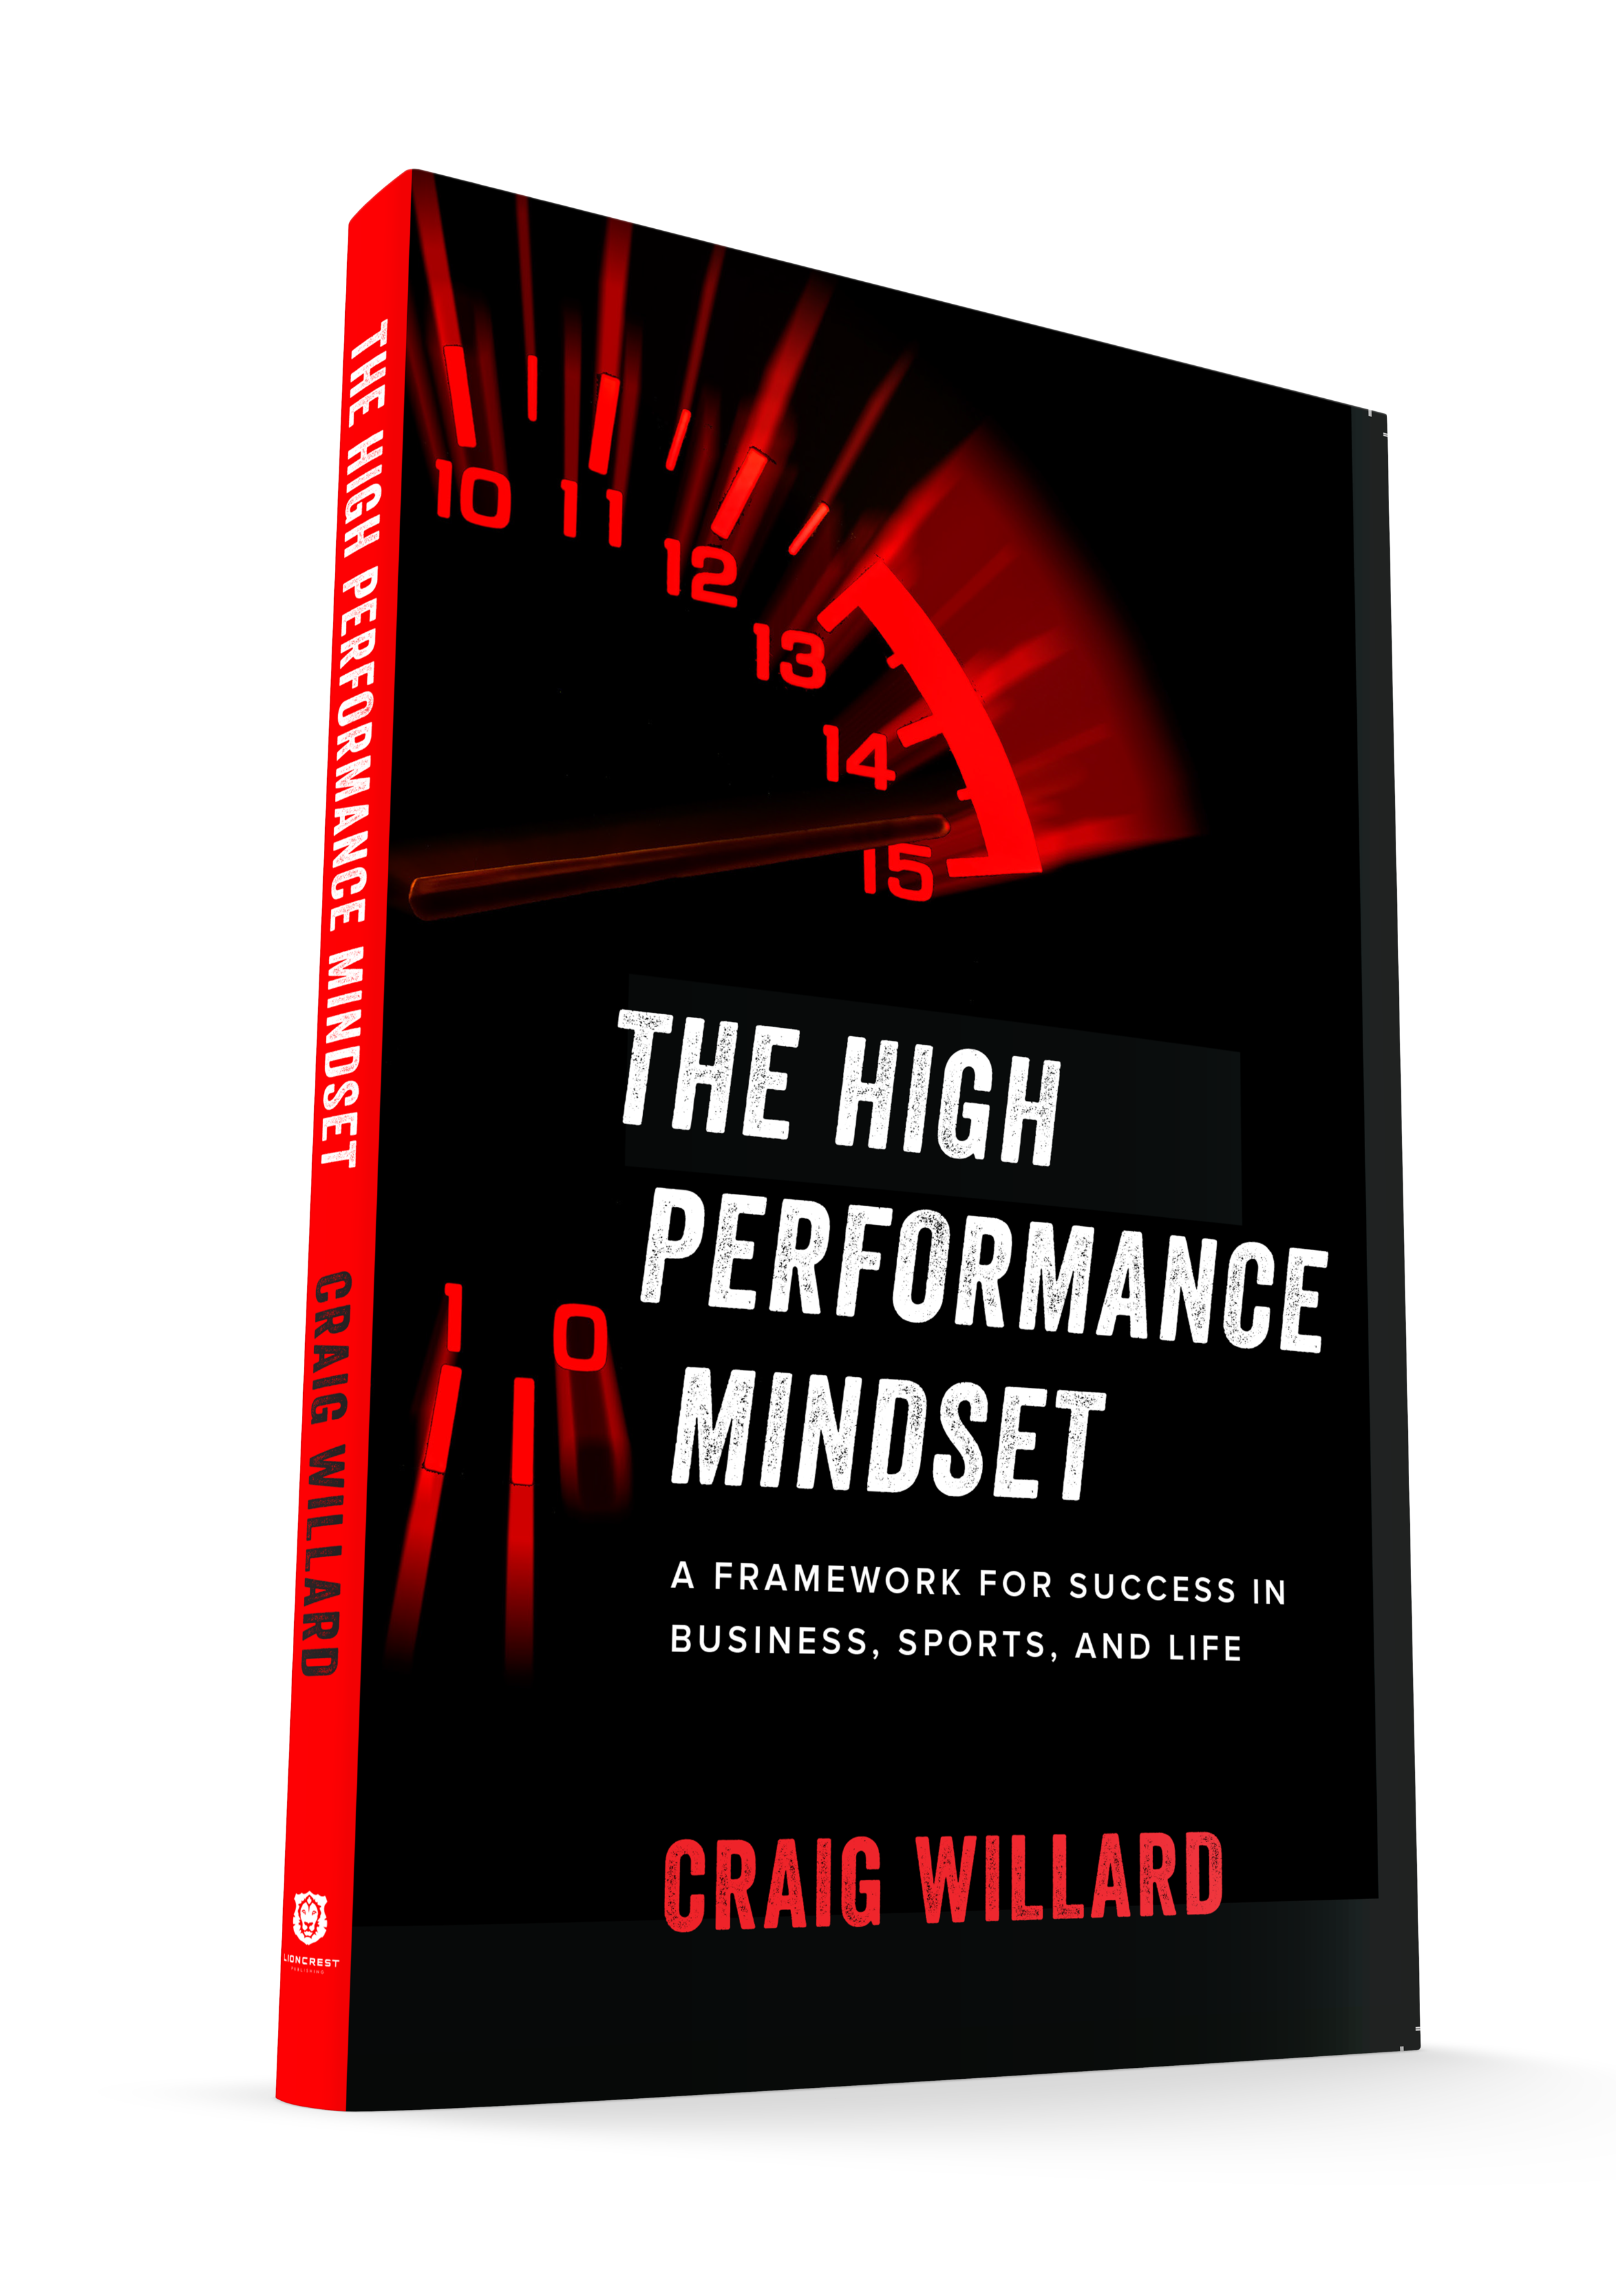 The_High_Performance_Mindset